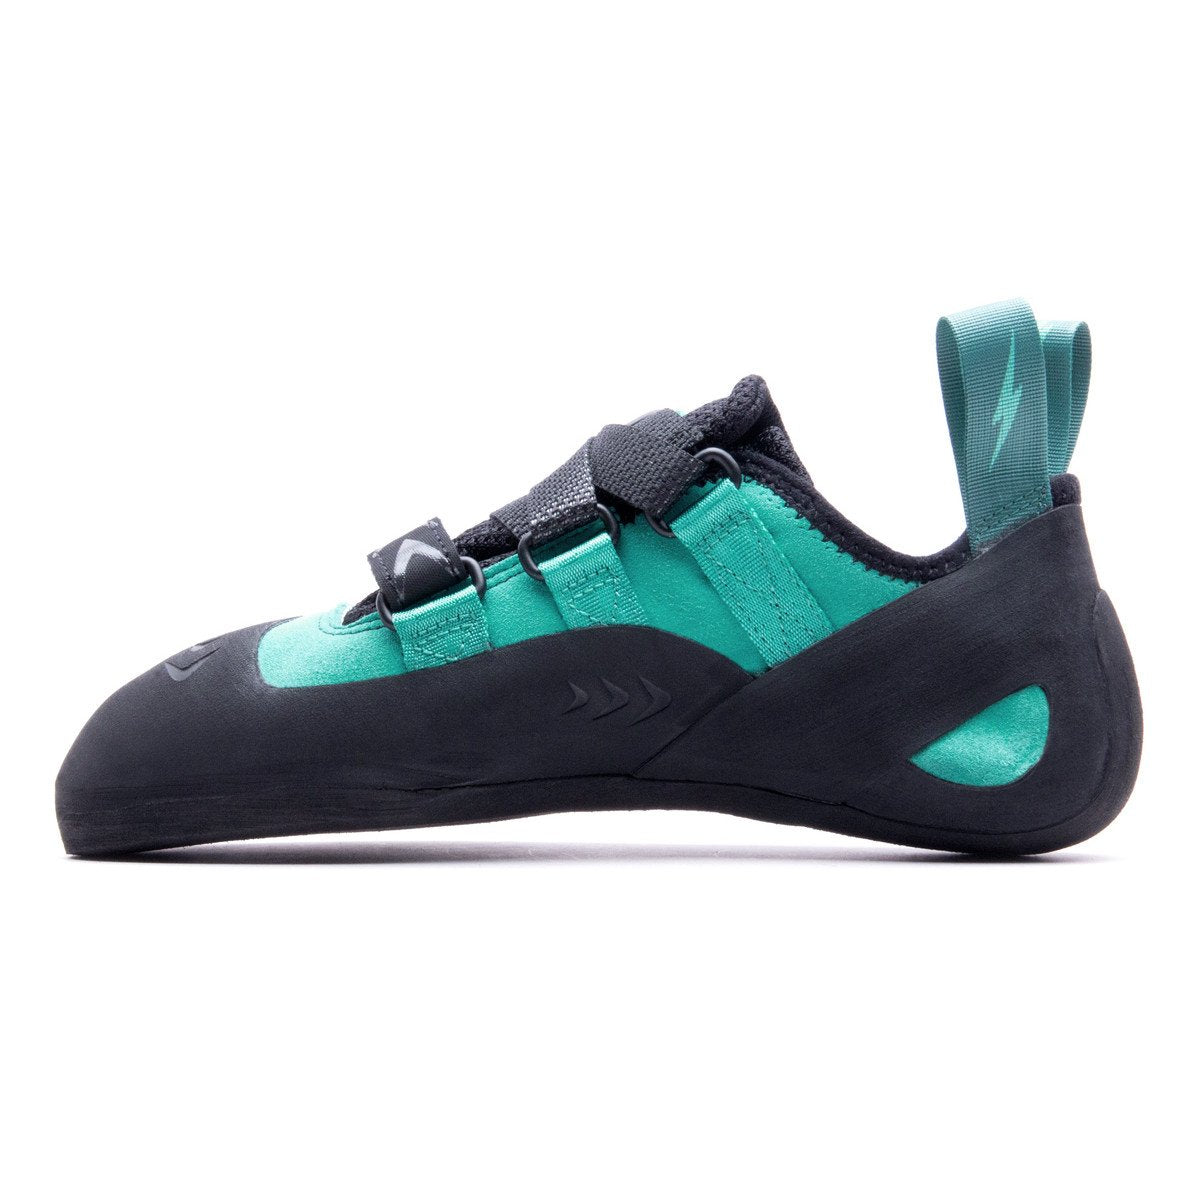 Evolv Kira Womens Climbing Shoe, inner side view